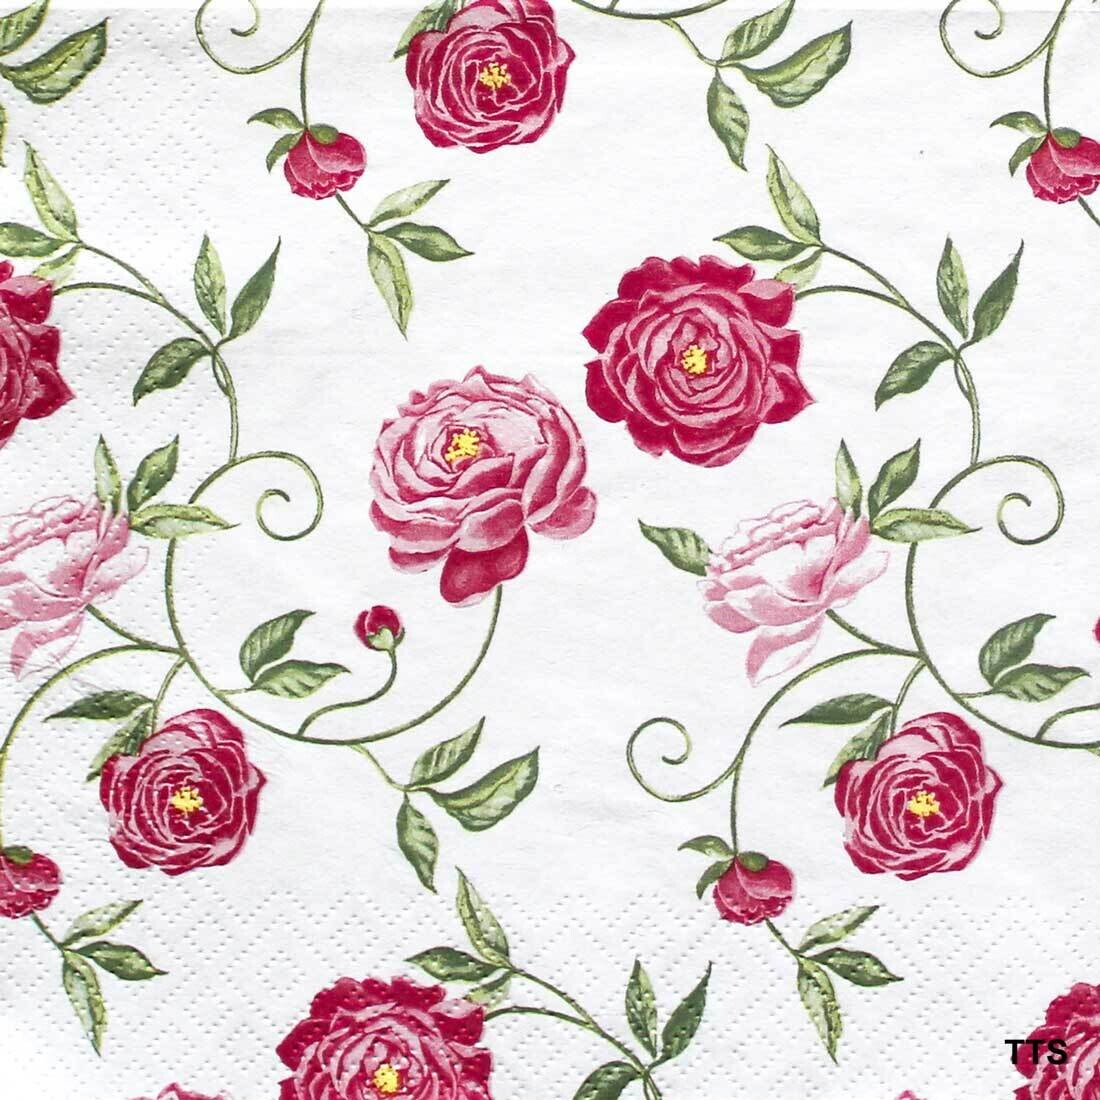 Decoupage Paper Napkins - Floral - Peony Pink (1 Sheet)